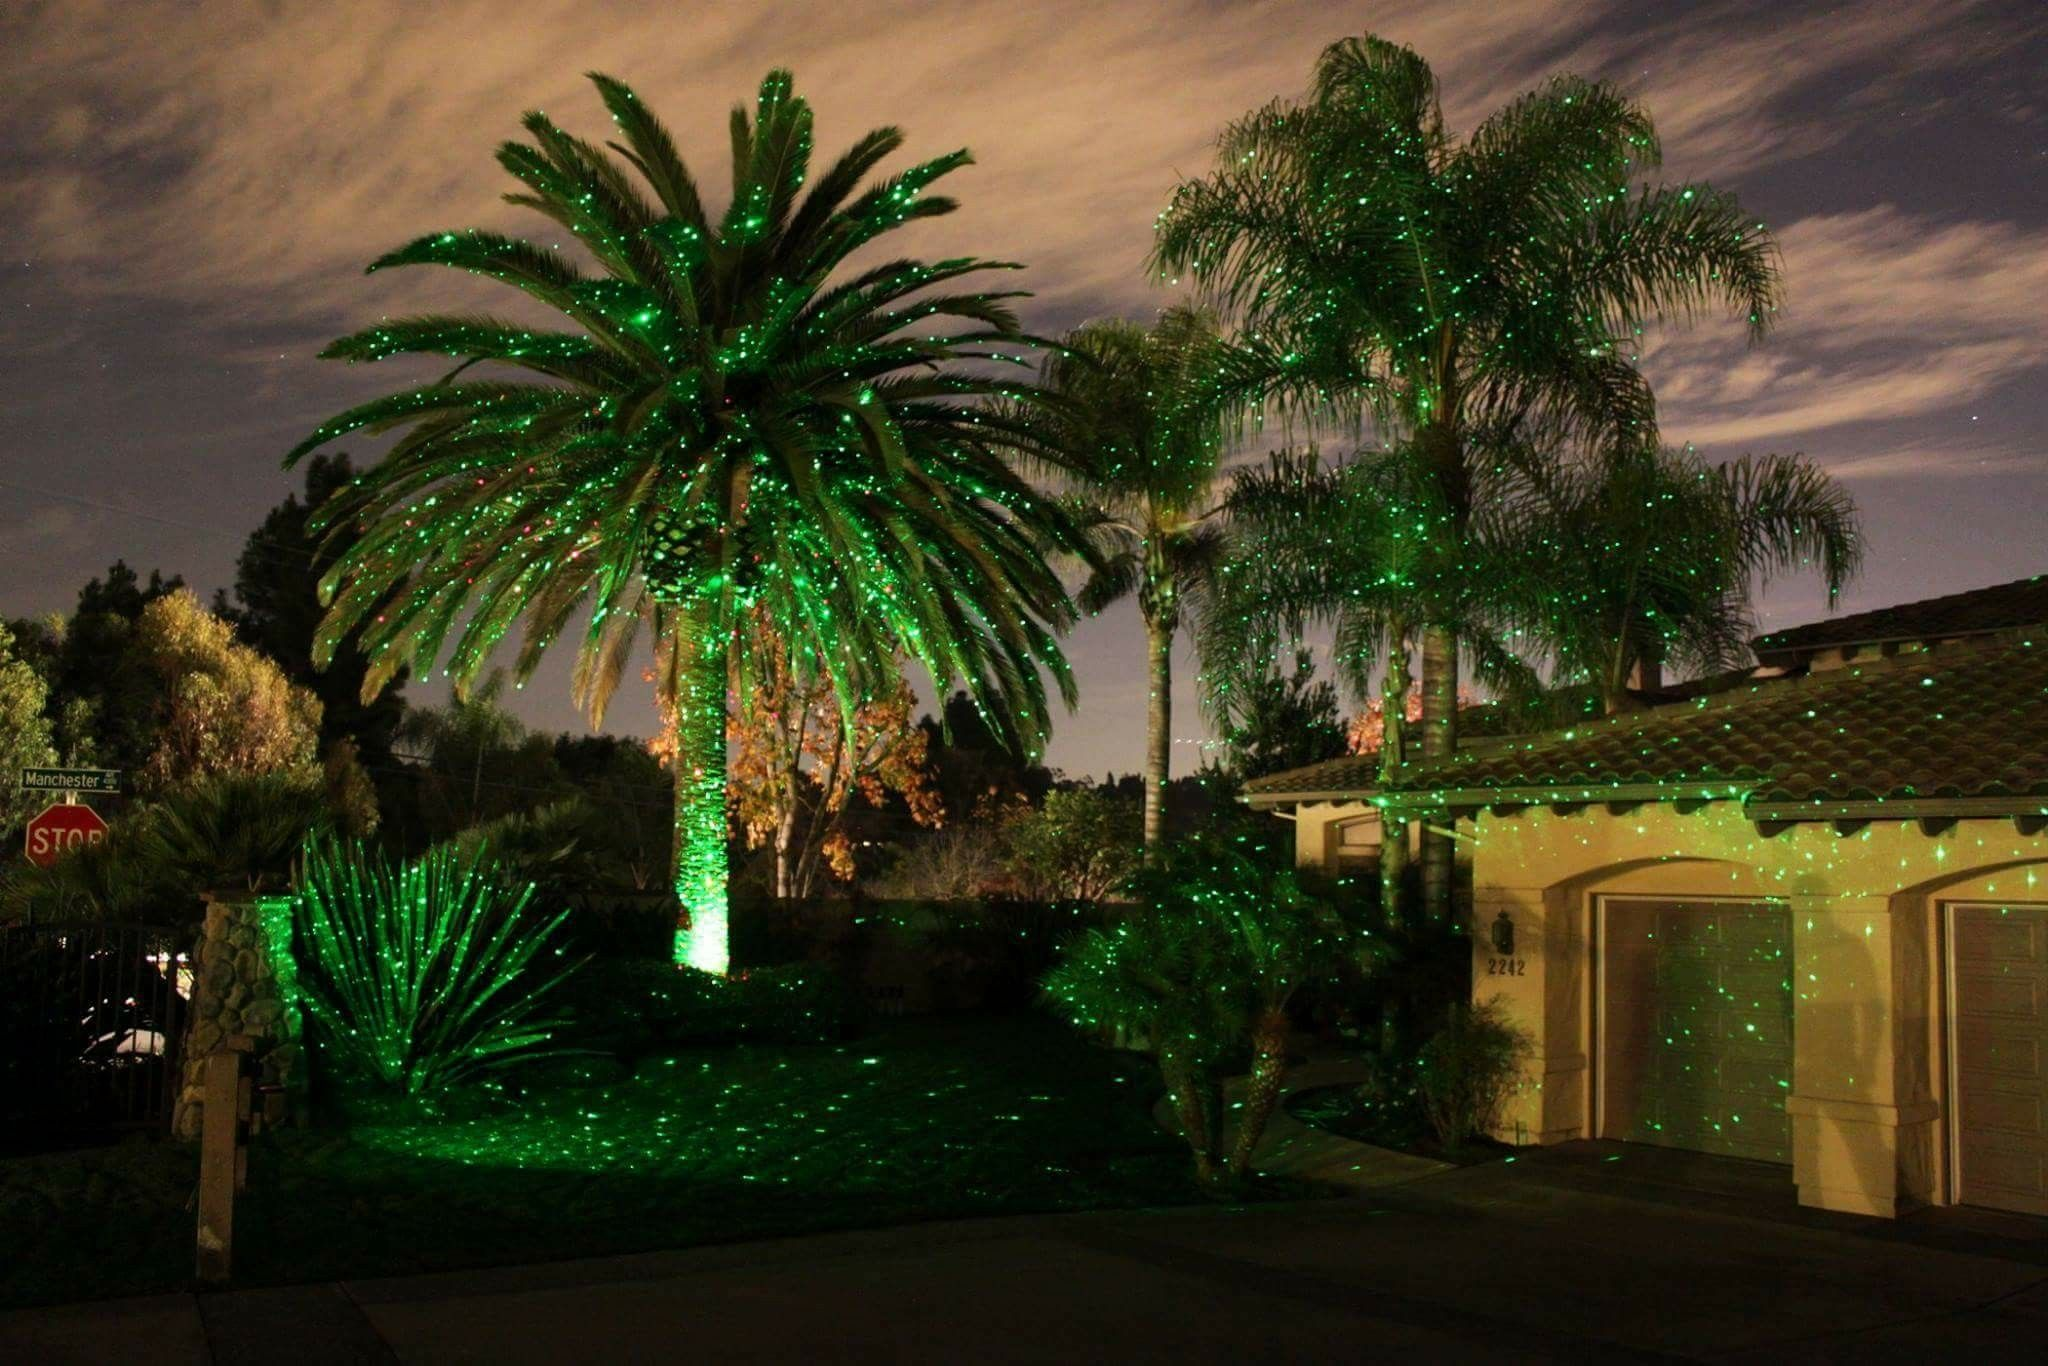 Palms with green bliss lights. So pretty!